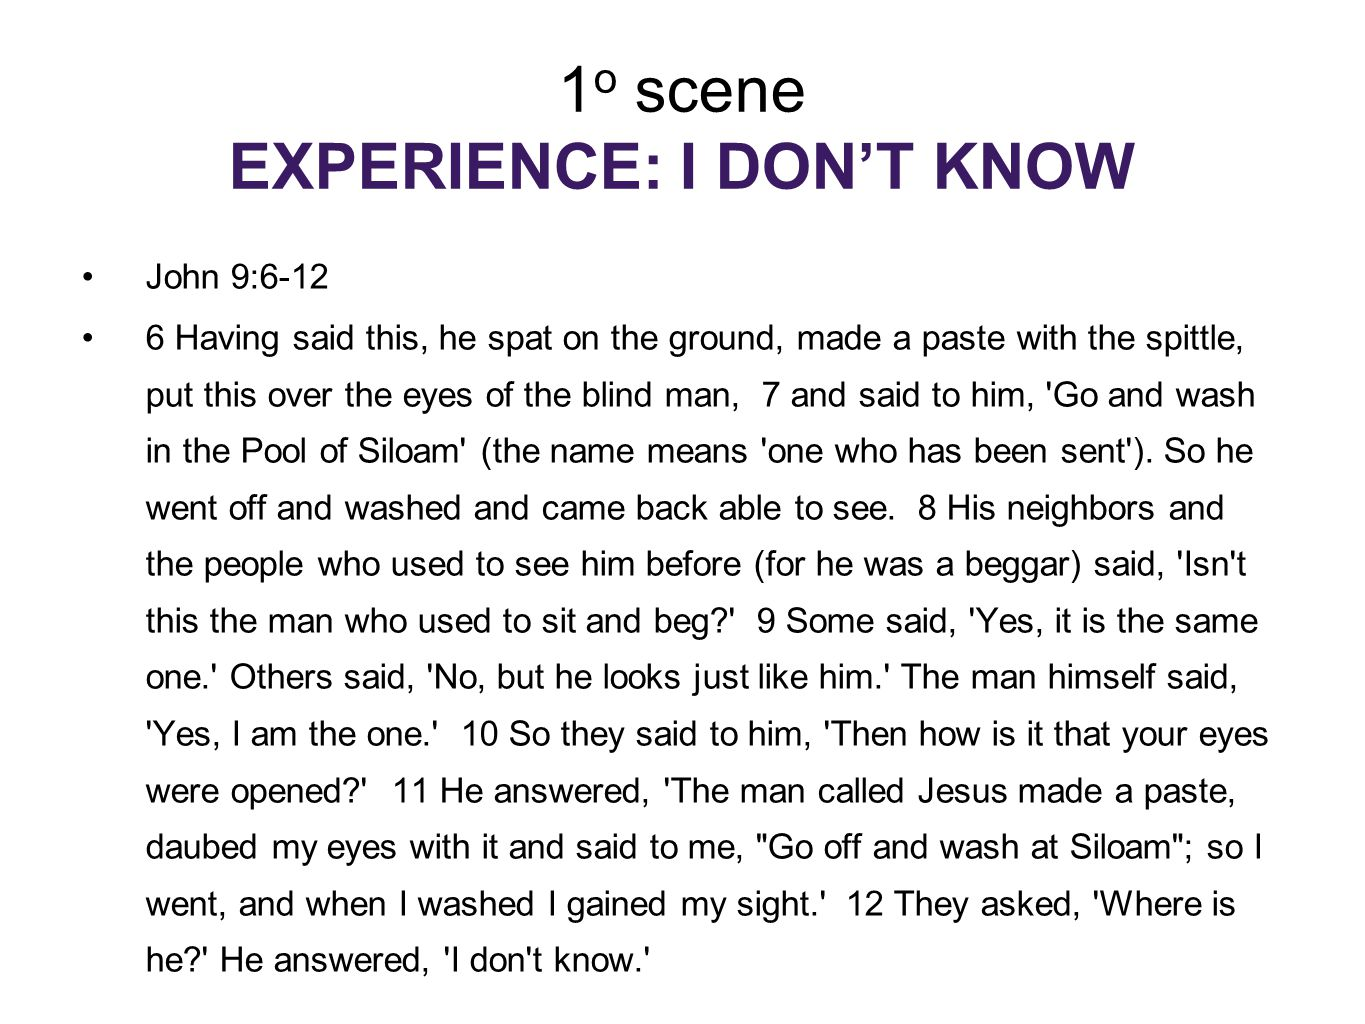 1 o scene EXPERIENCE: I DON'T KNOW John 9:6-12 6 Having said this, he spat on the ground, made a paste with the spittle, put this over the eyes of the blind man, 7 and said to him, Go and wash in the Pool of Siloam (the name means one who has been sent ).